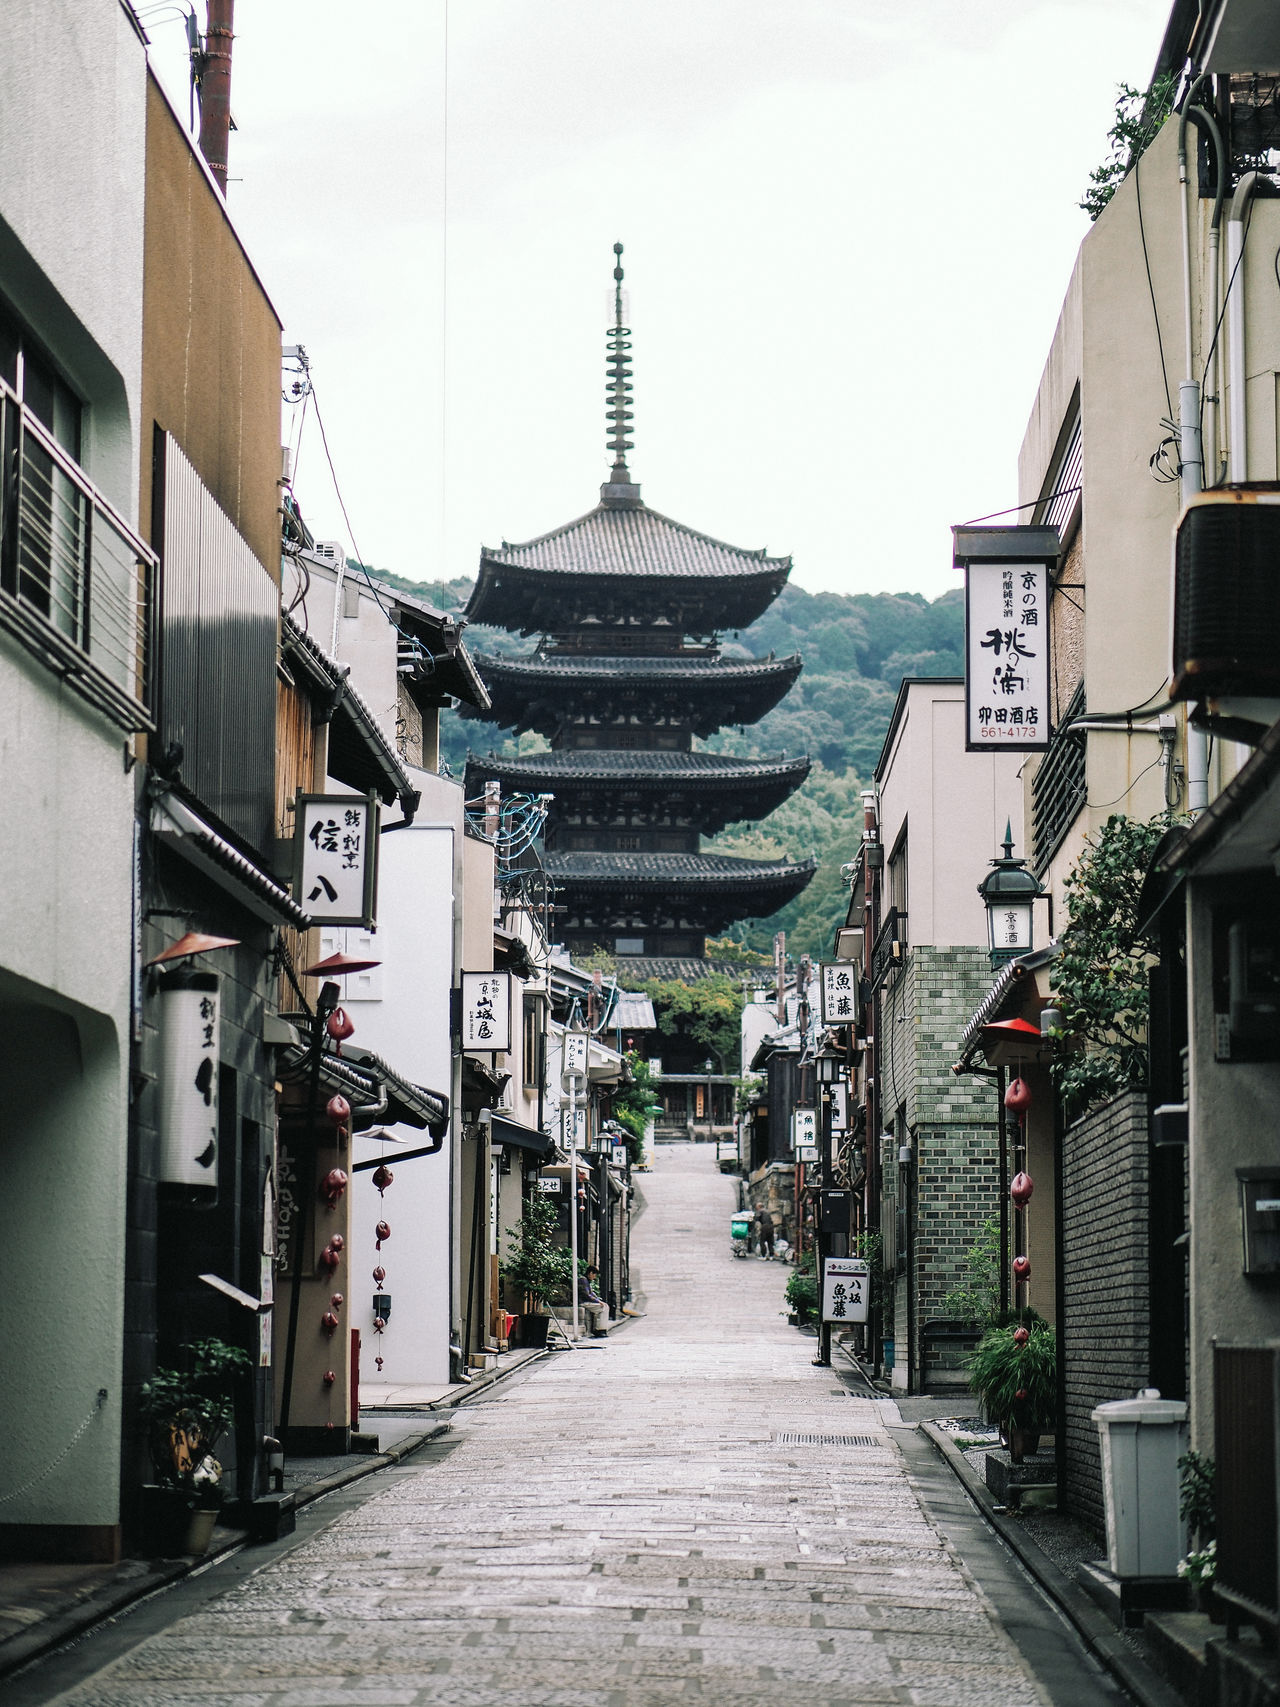 Kyoto urban landscape Architecture Building Exterior Built Structure Day East Asia Japan Kyoto City Kyoto Prefecture No People Oriental Outdoors Pagoda Sky Spirituality Temple - Building The Way Forward Tourism Tourist Attraction  Traditional Culture Trees Urban Road Vertical Walkway